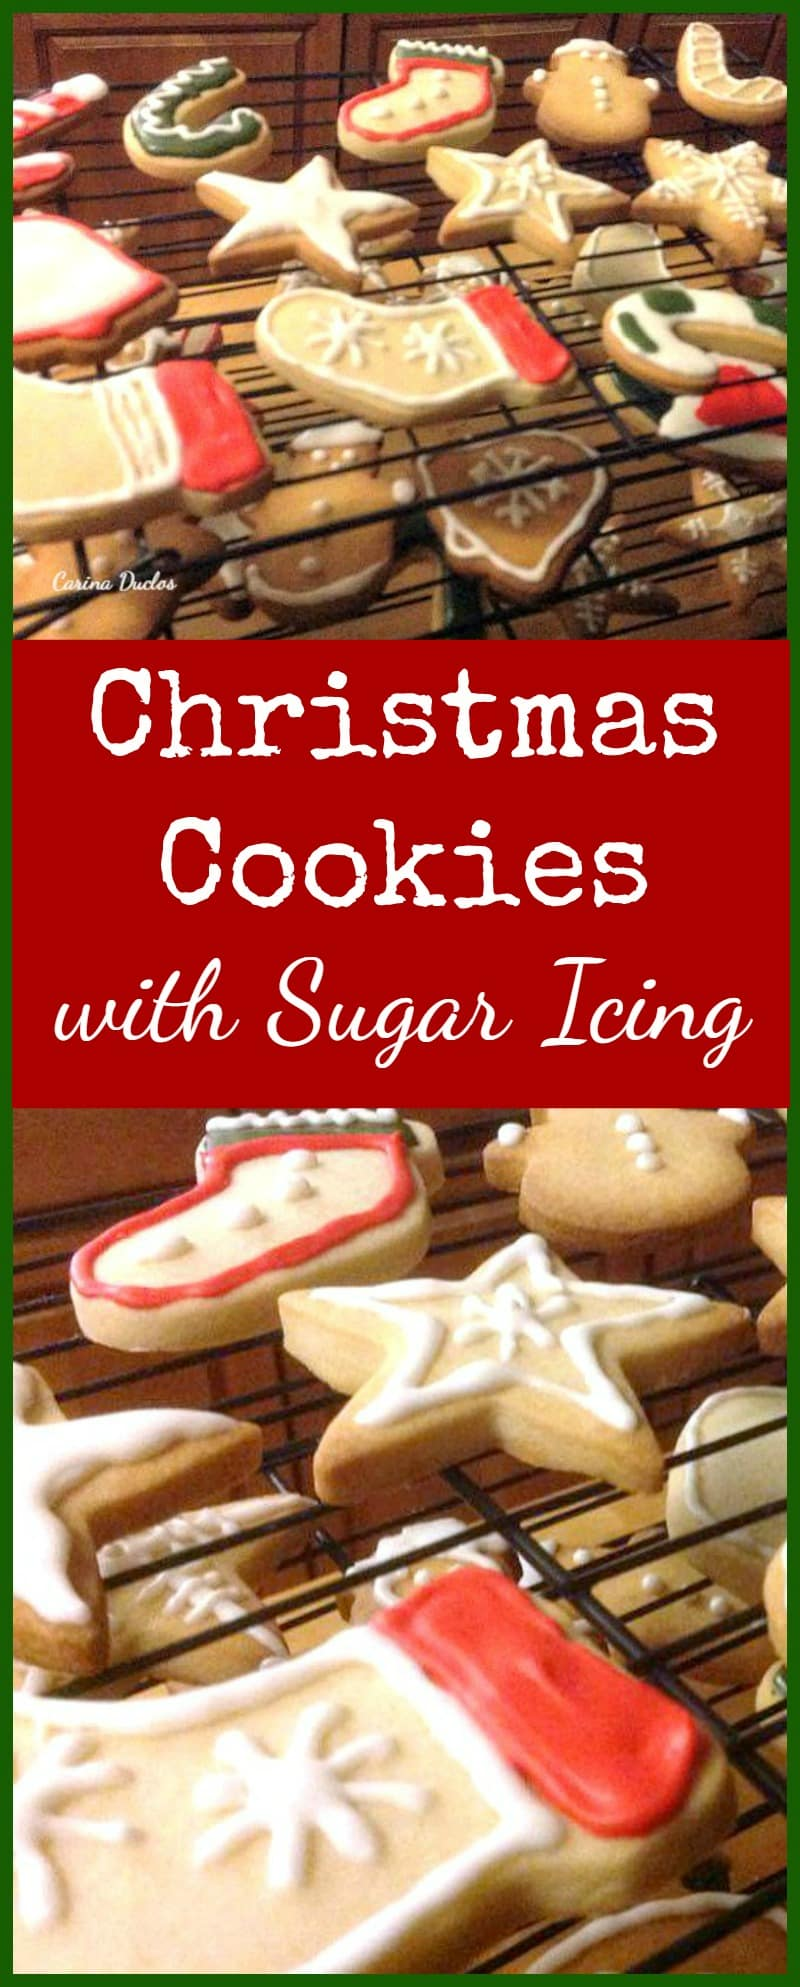 Christmas Cookies with Sugar Icing. These little cookies are such fun to make! Get ready for the holidays and make up a batch. Great for gifts and there's a recipe for a super easy sugar icing too. | Lovefoodies.com